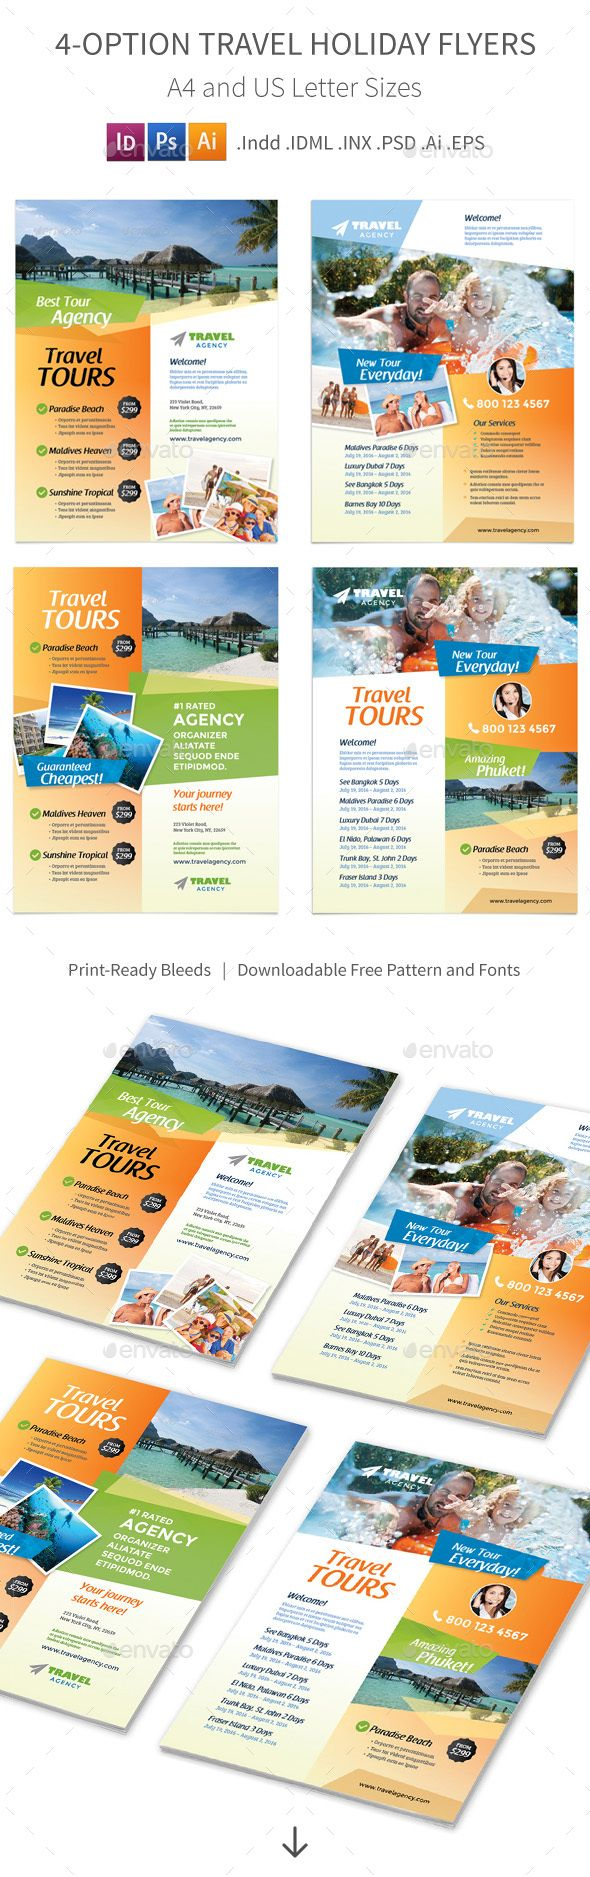 Travel Holiday Flyers – 4 Options | Psd templates, Template and Holidays